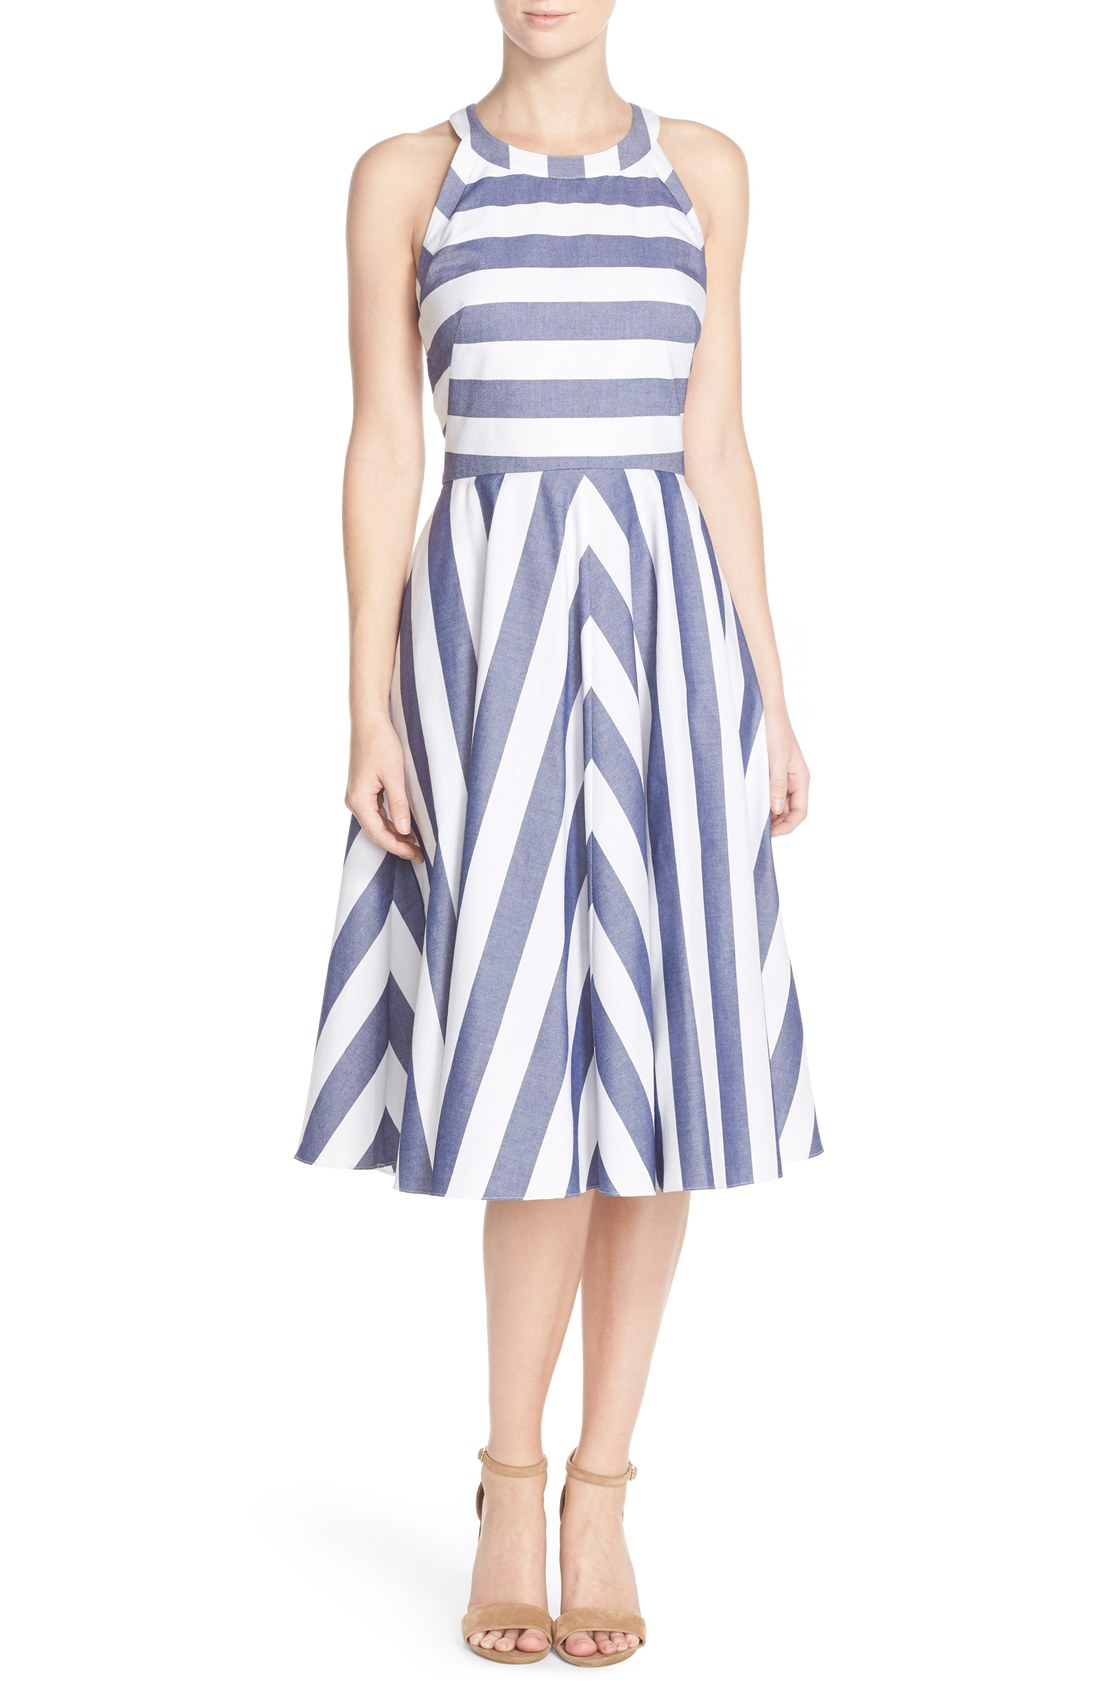 Cotton Fit & Flare Dress, $158                                    (Image: Nordstrom)